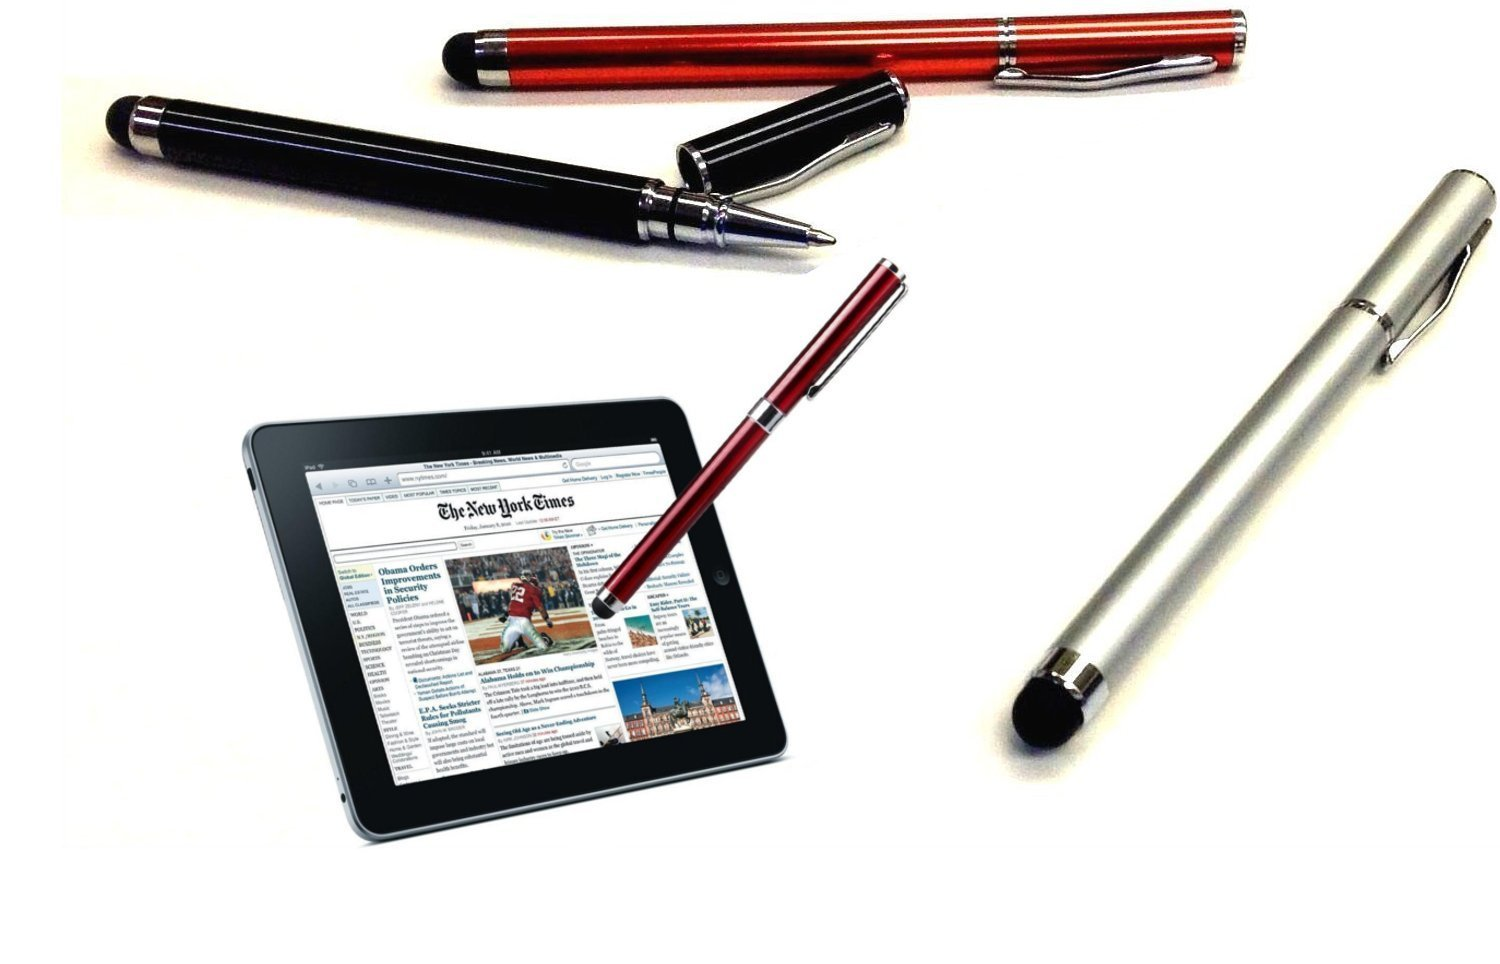 PRO Archos 97b Platinum HD Media Player Custom Stylus + Writing Pen with Ink! [3 Pack - Silver Red Black] by Factory Direct